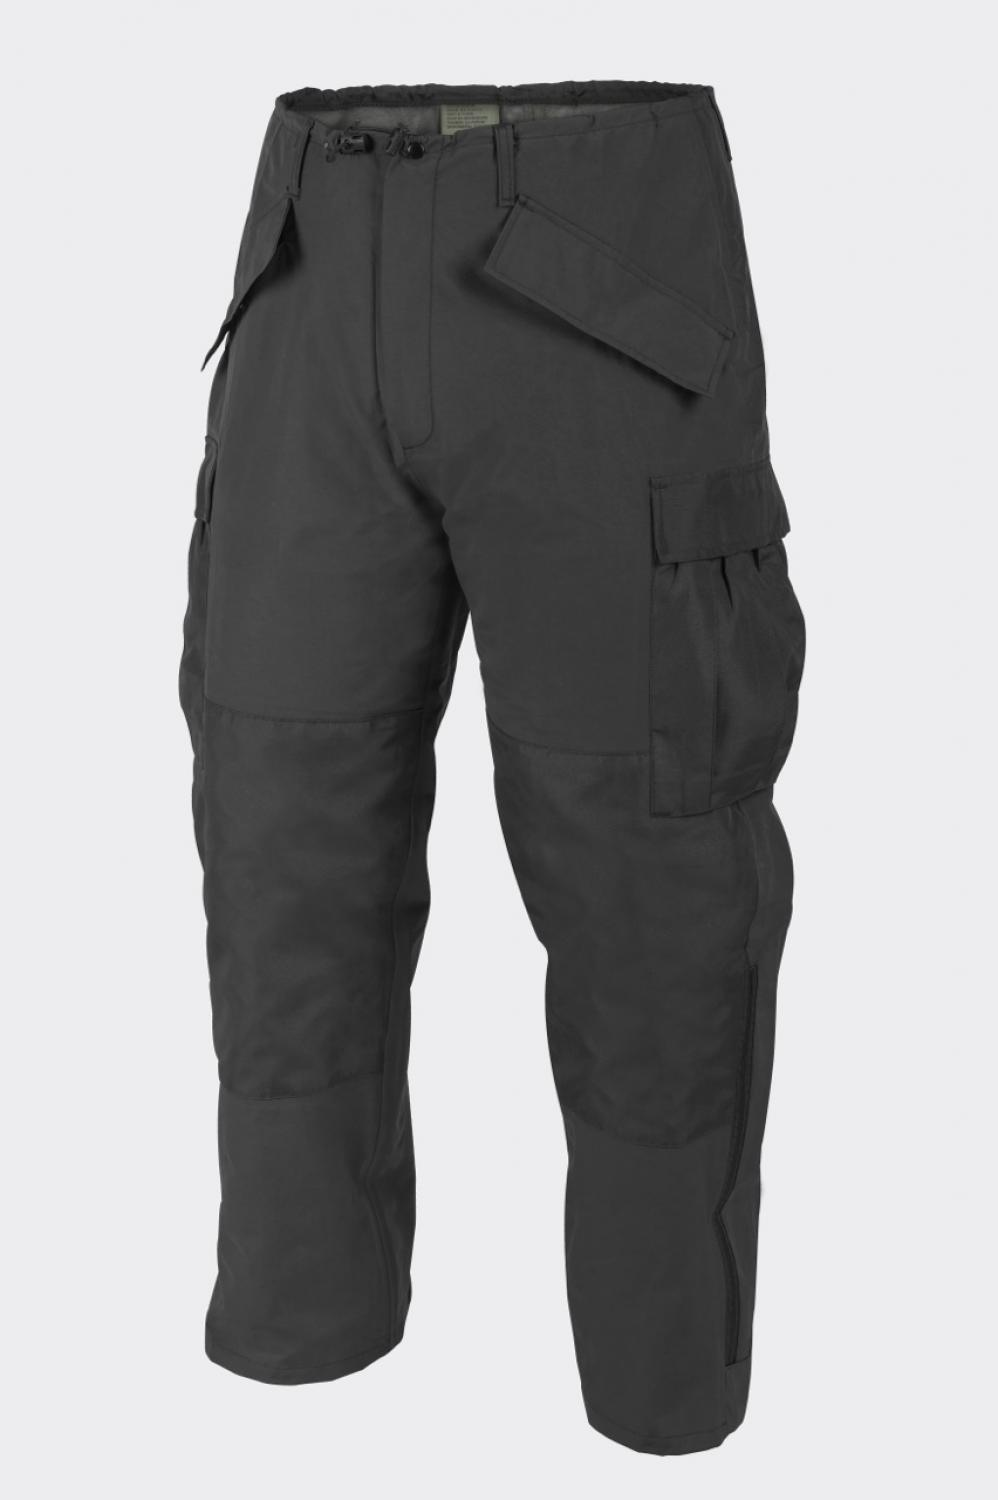 ECWCS Pants Gen II Black